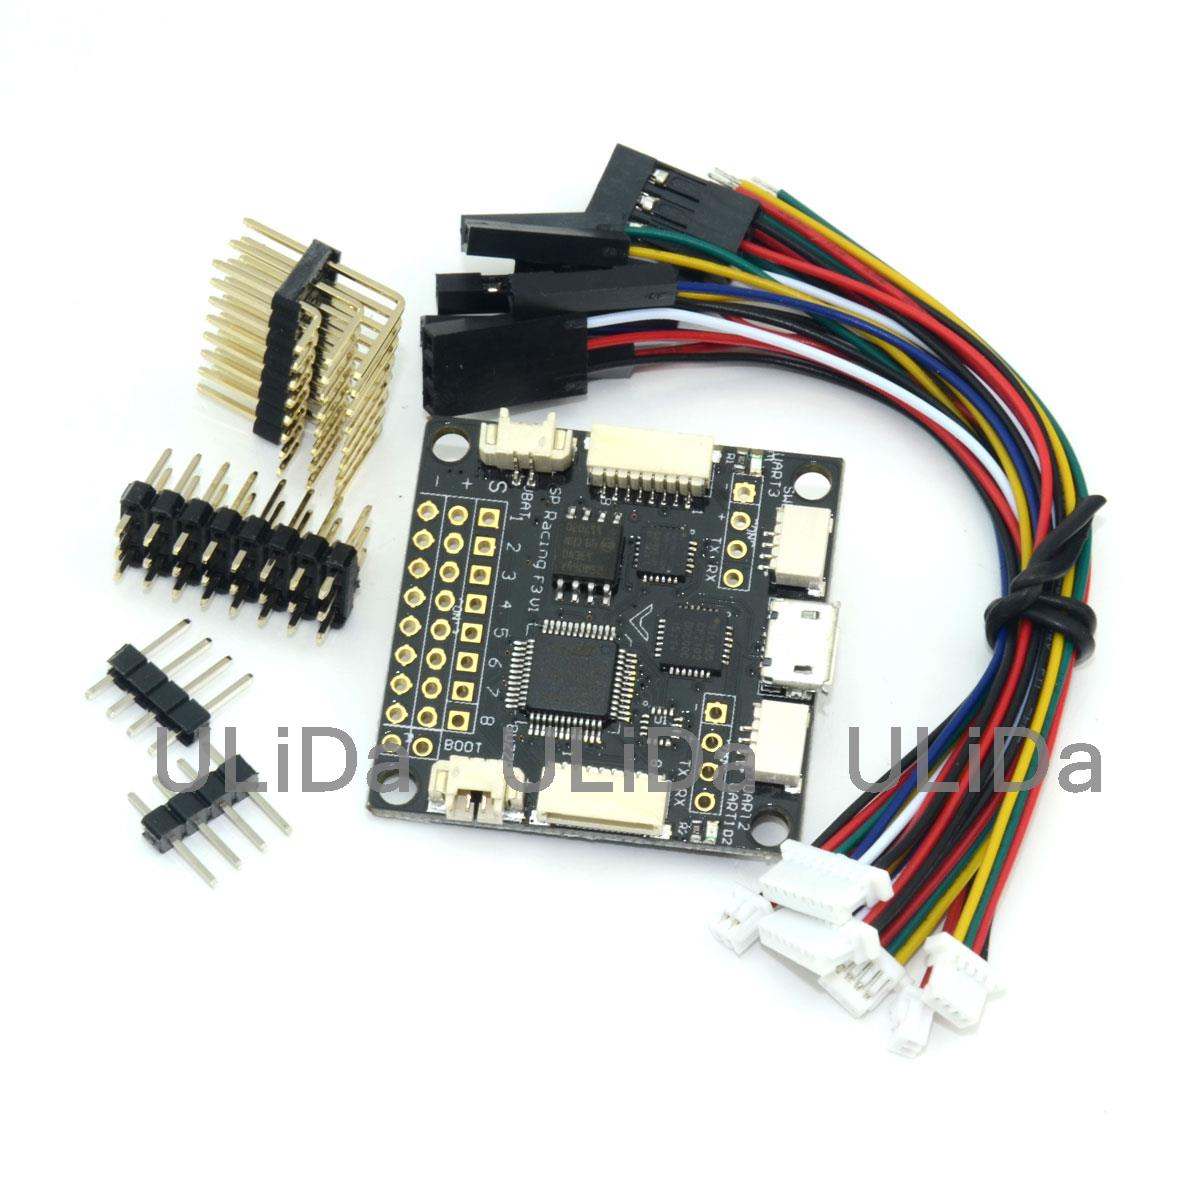 small resolution of sp racing f3 acro flight controller board fc for fpv quadcopter multicopter in parts accessories from toys hobbies on aliexpress com alibaba group